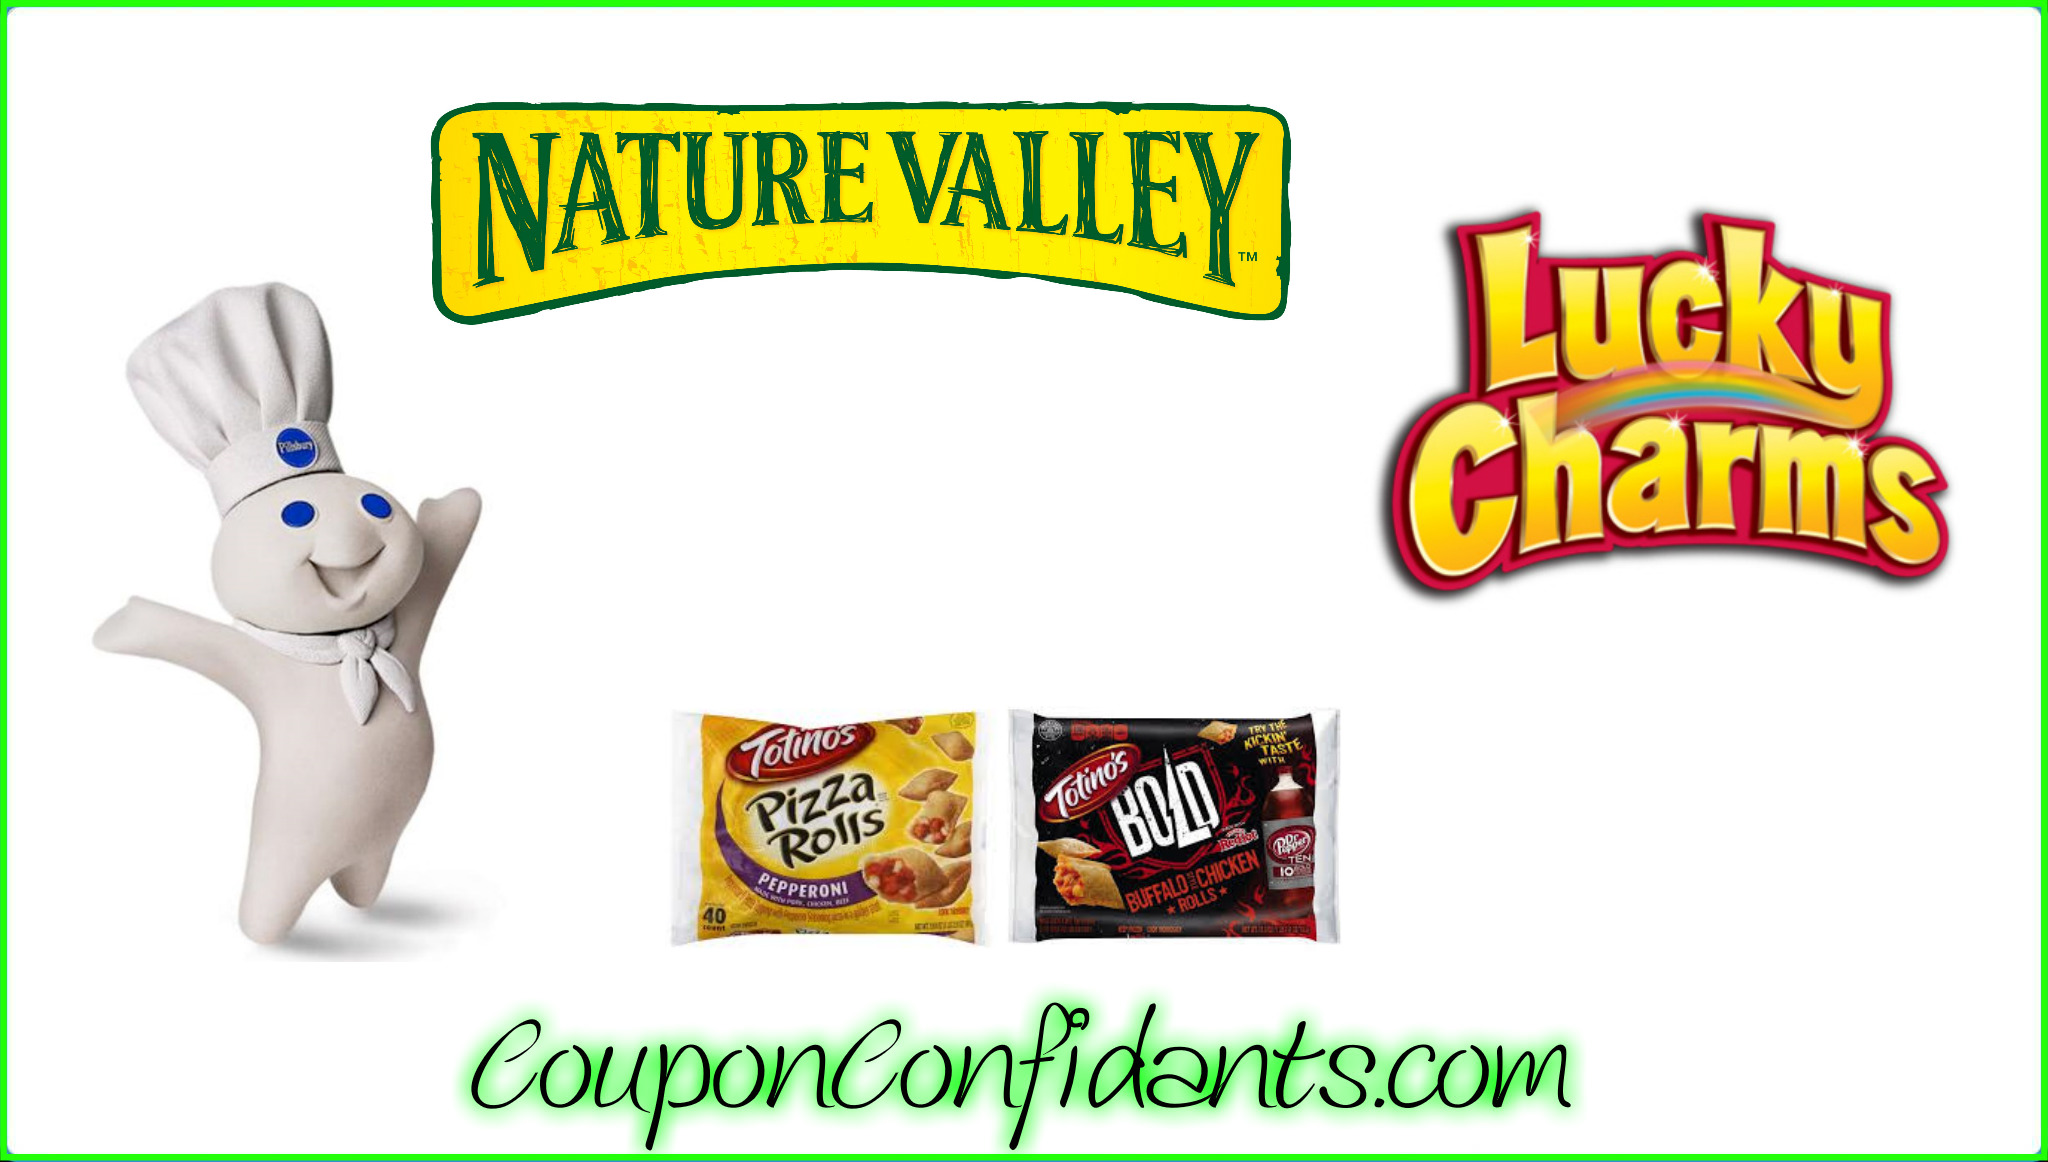 NEWEST General Mills Coupons!